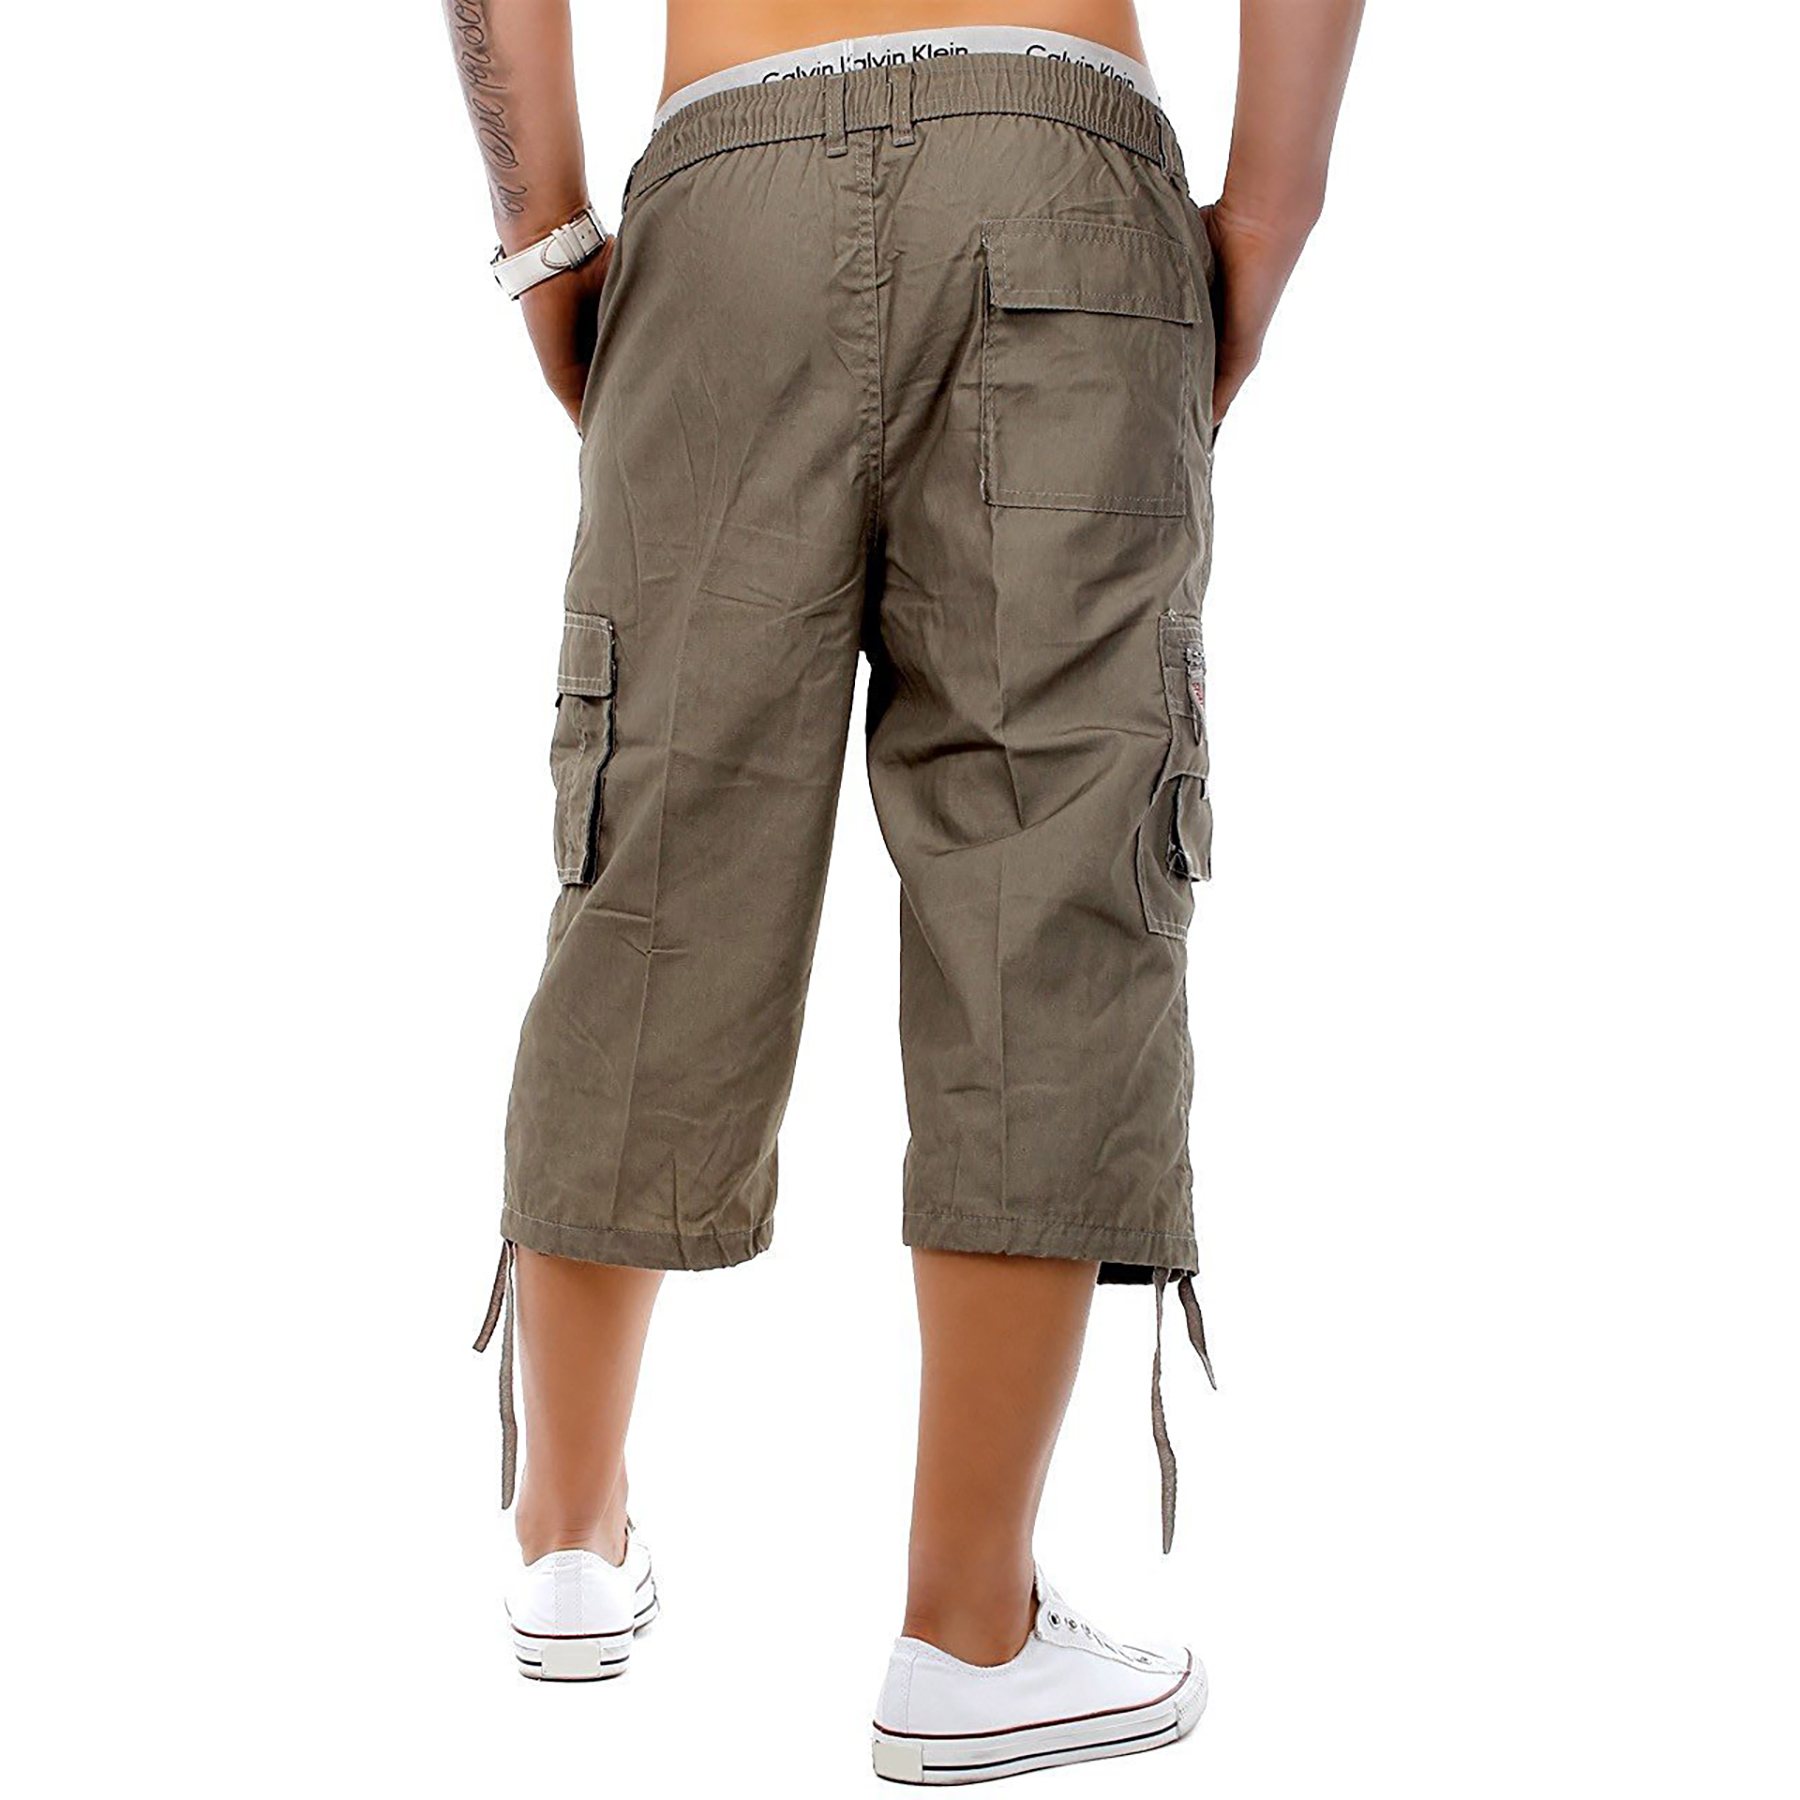 Mens-3-4-Long-Length-Shorts-Elasticated-Waist-Cargo-Combat-Three-Quarter-Shorts thumbnail 12